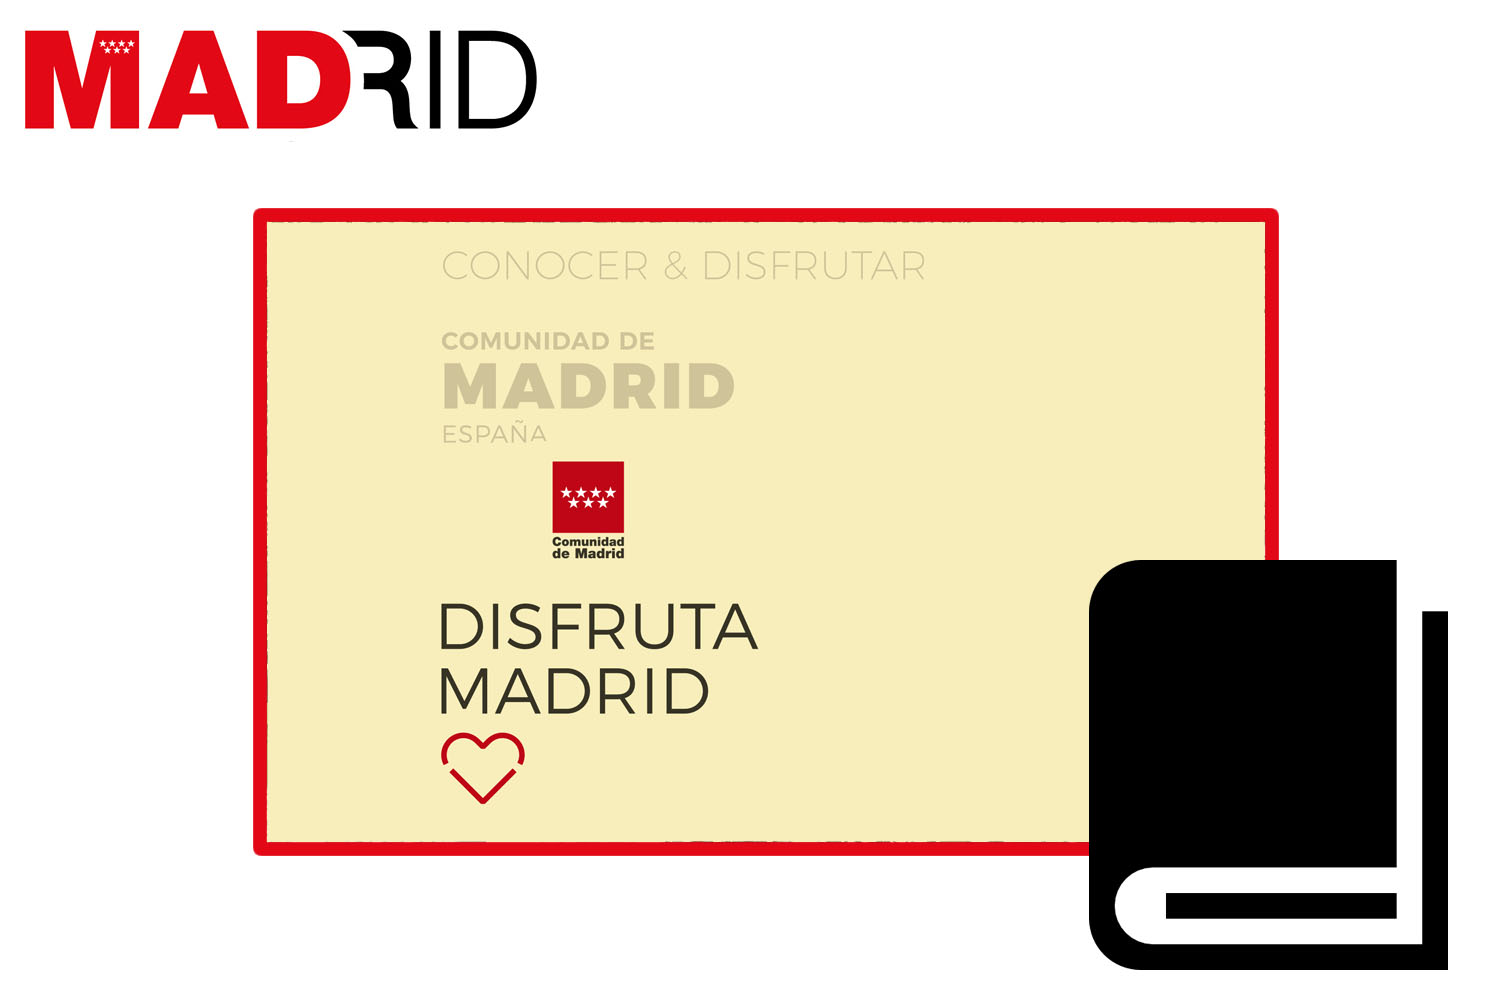 Madrid Region of Madrid Spain. Disfruta Madrid